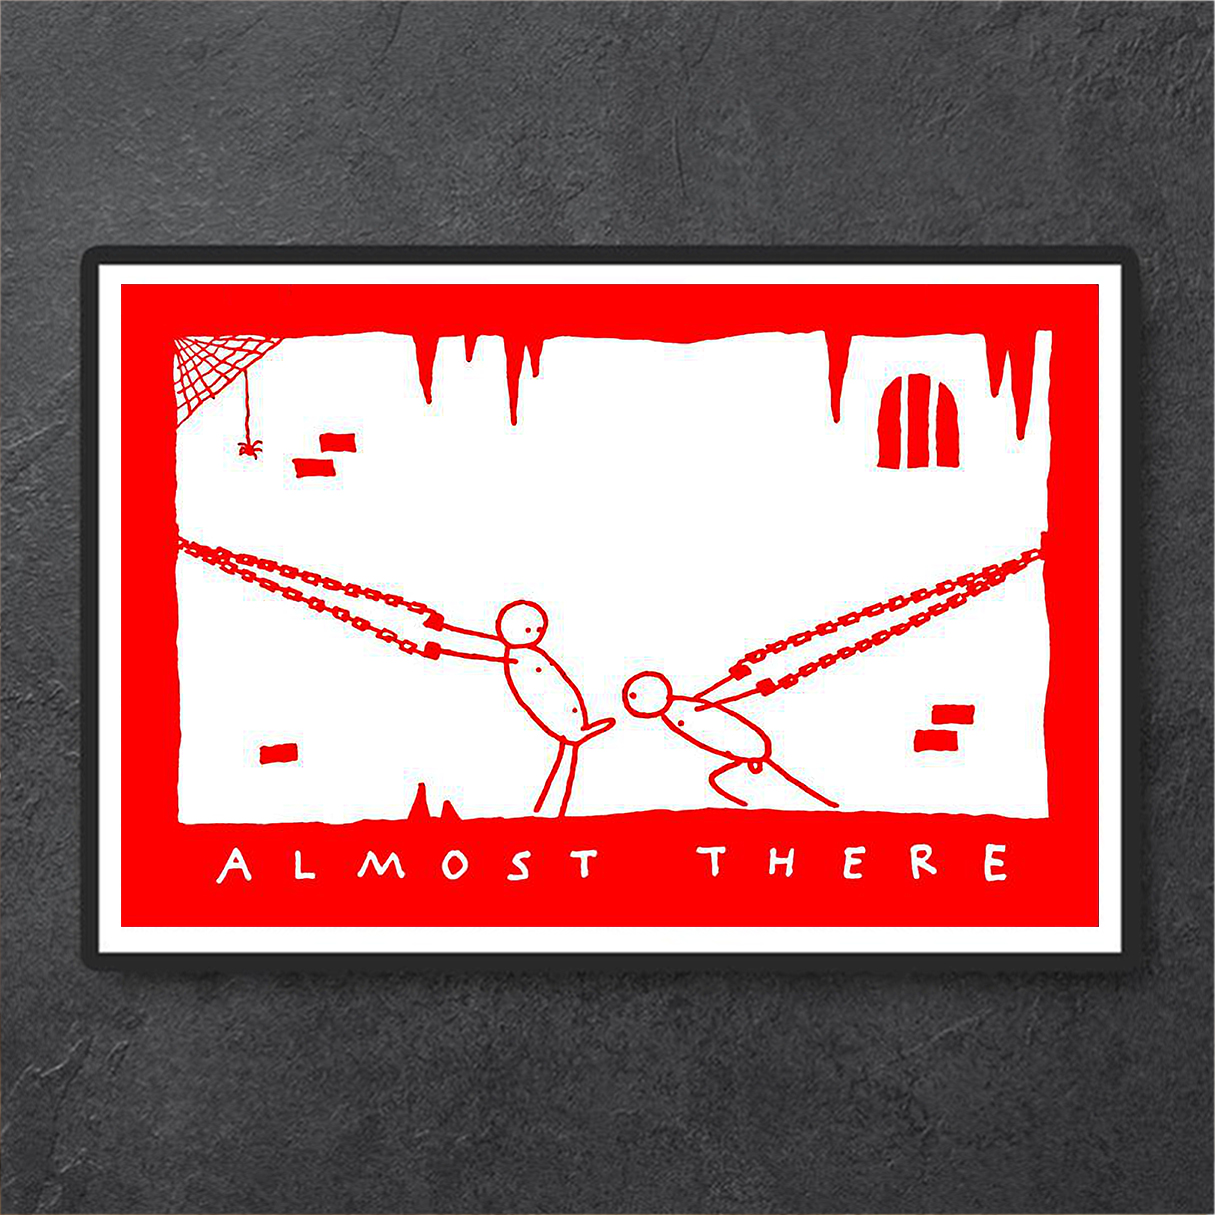 Almost there poster A3